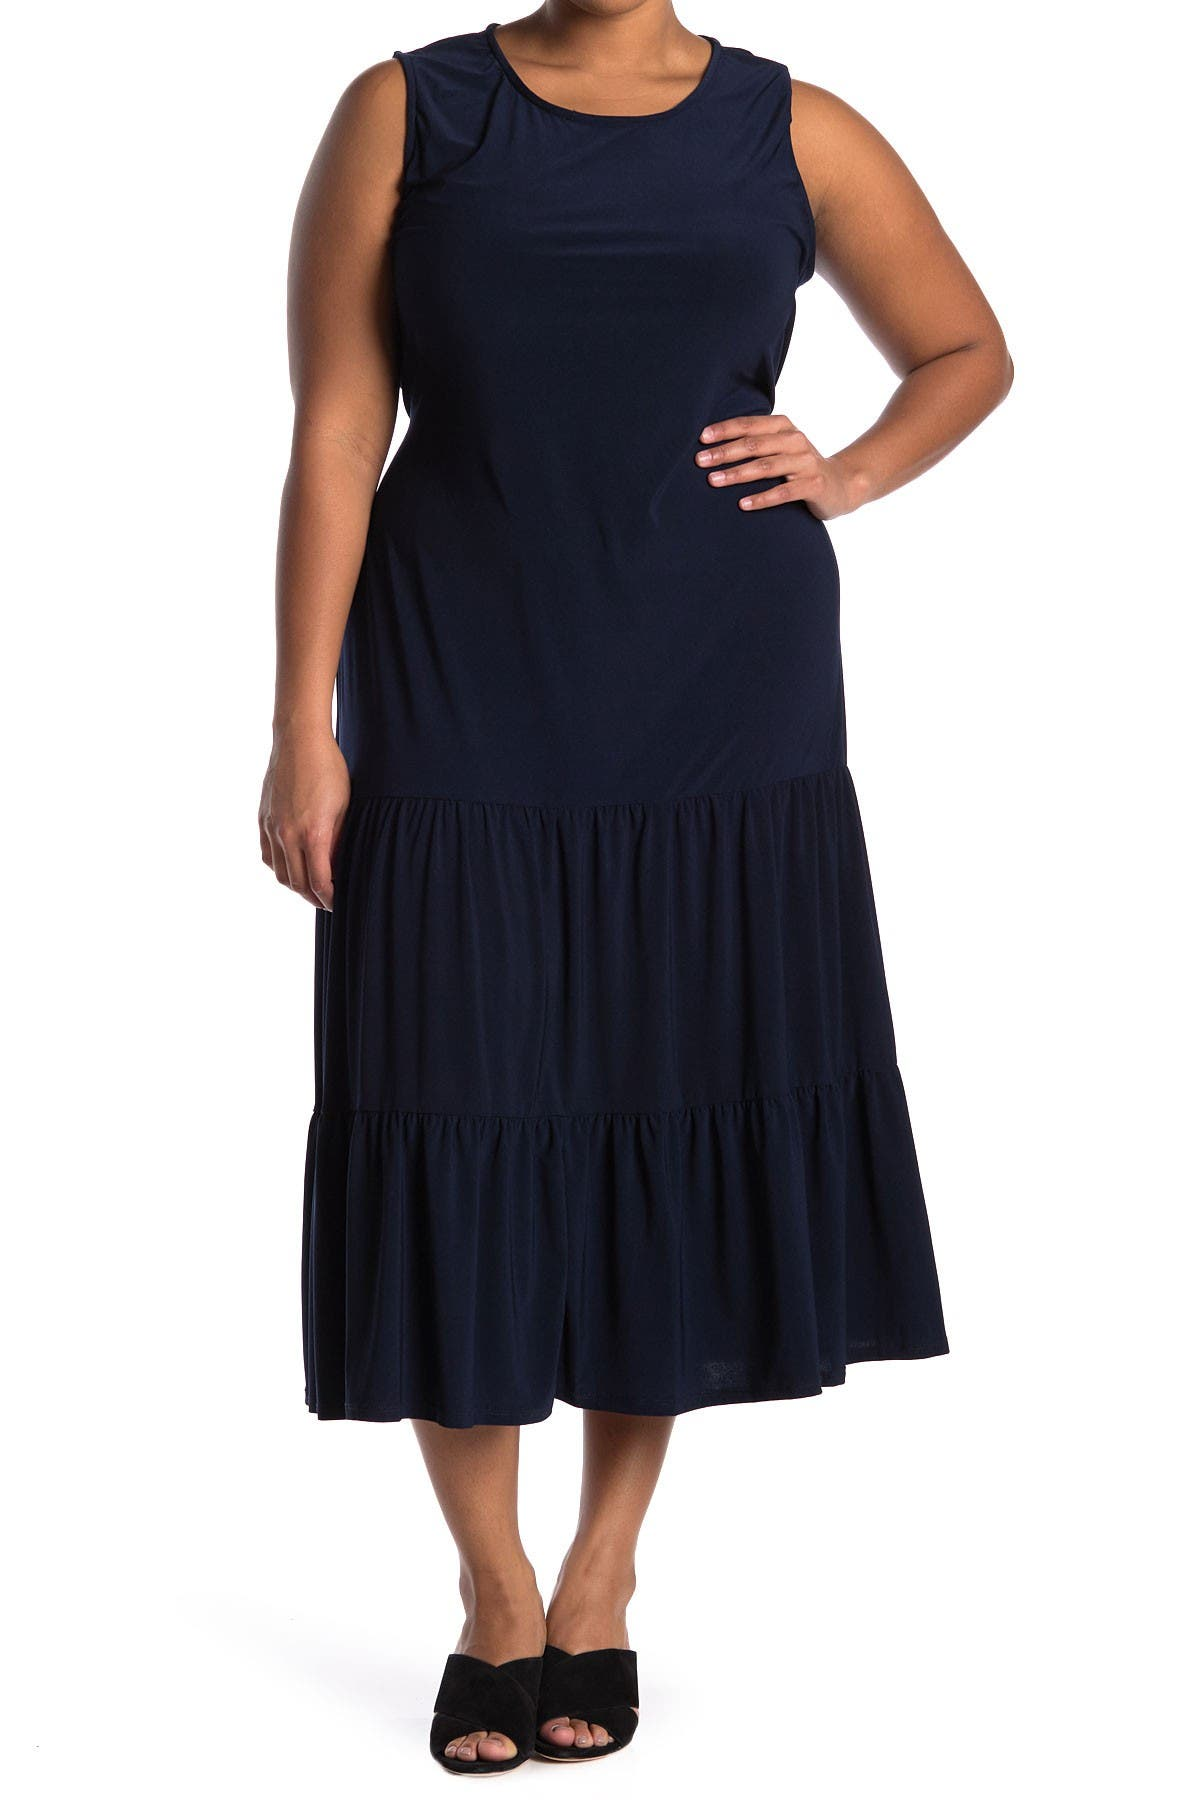 Image of TASH + SOPHIE Tiered Maxi Dress